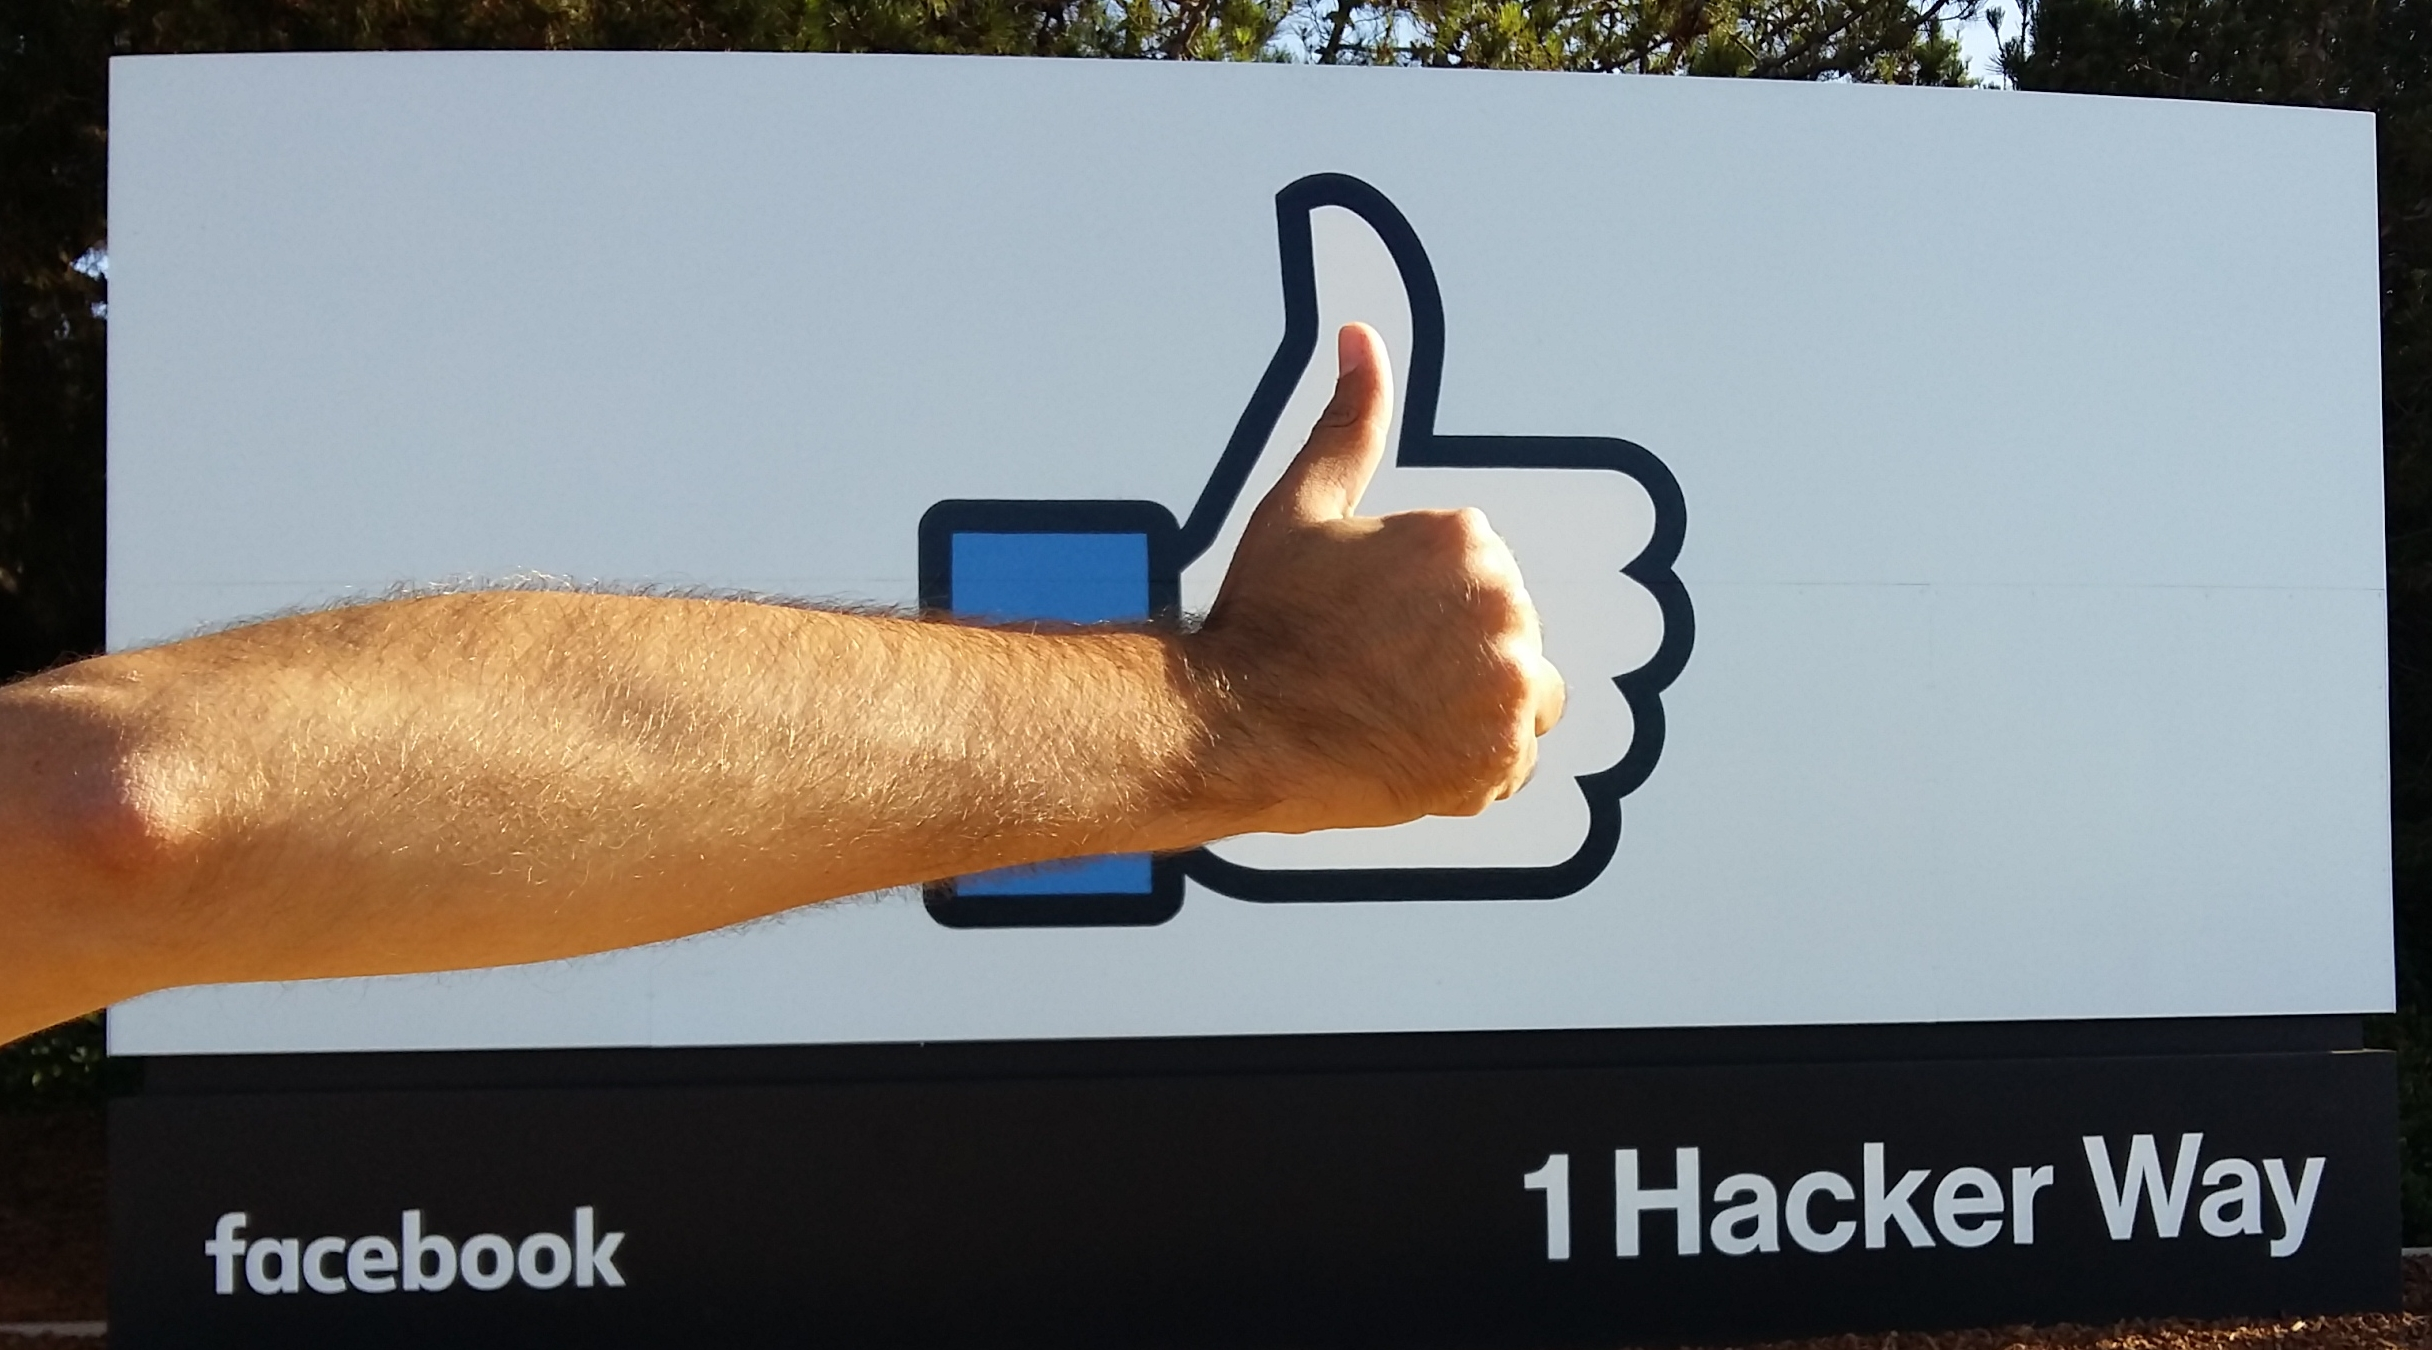 hacker-way Facebook